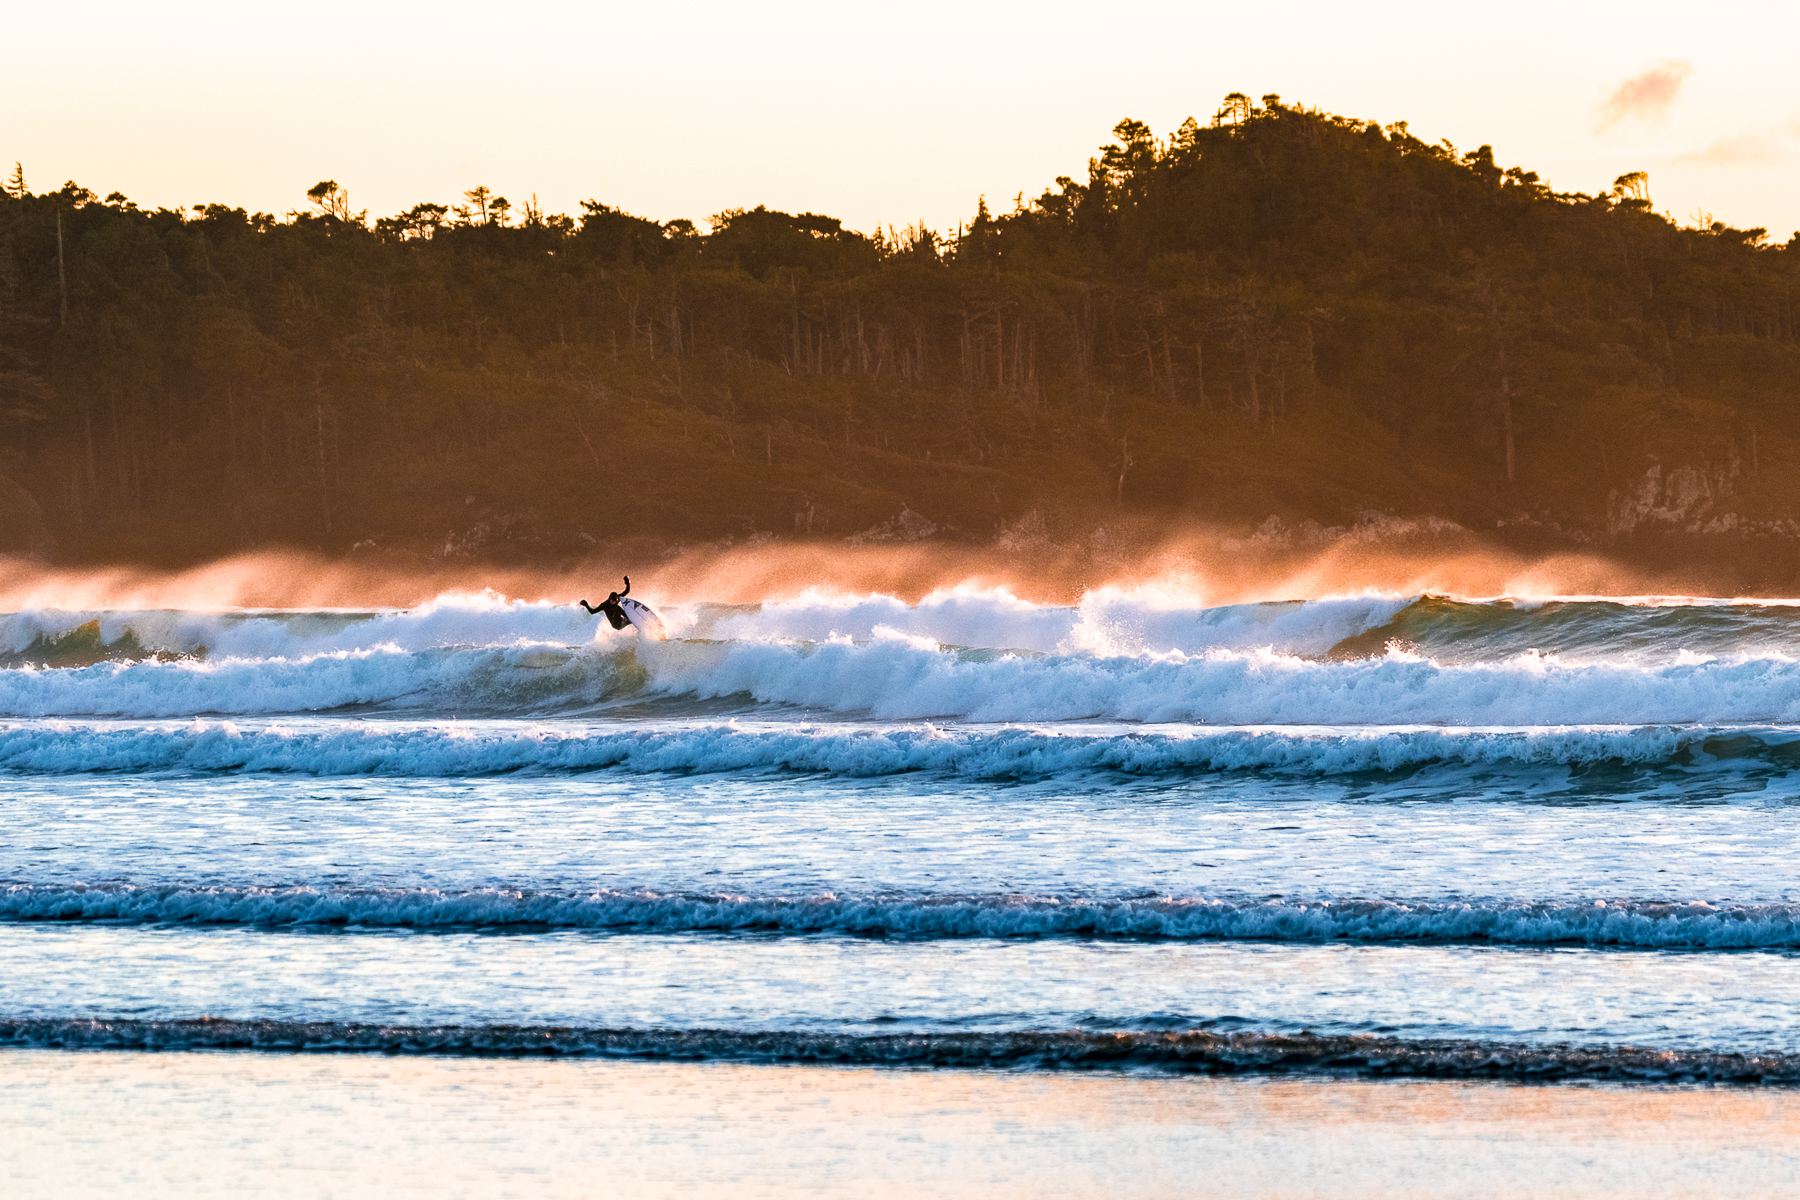 tofino_surf_photography_reed_platenius_sunset_canada_Vancouver_Isand_2018.jpg